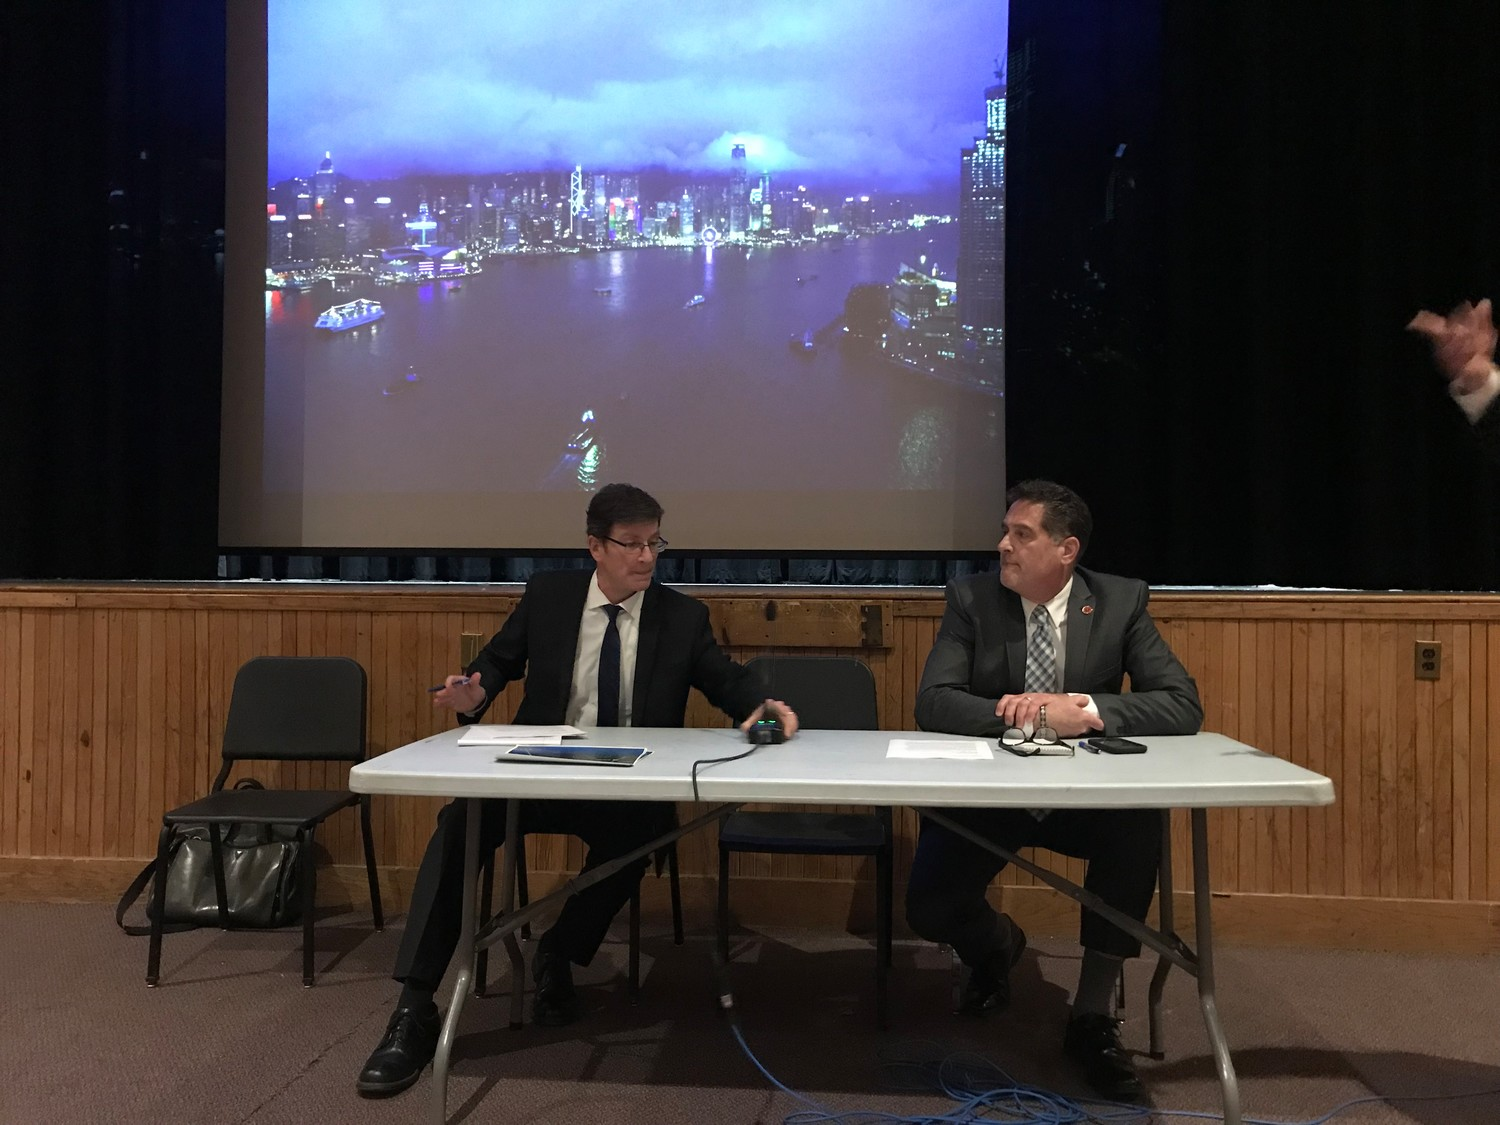 Jim Tierney, the deputy commissioner for water resources for the DEC, left, and Brian Schneider, the county's deputy executive for parks and public works, addressed questions and concerns from South Shore residents during a meeting on Feb. 28 at Wantagh High School.